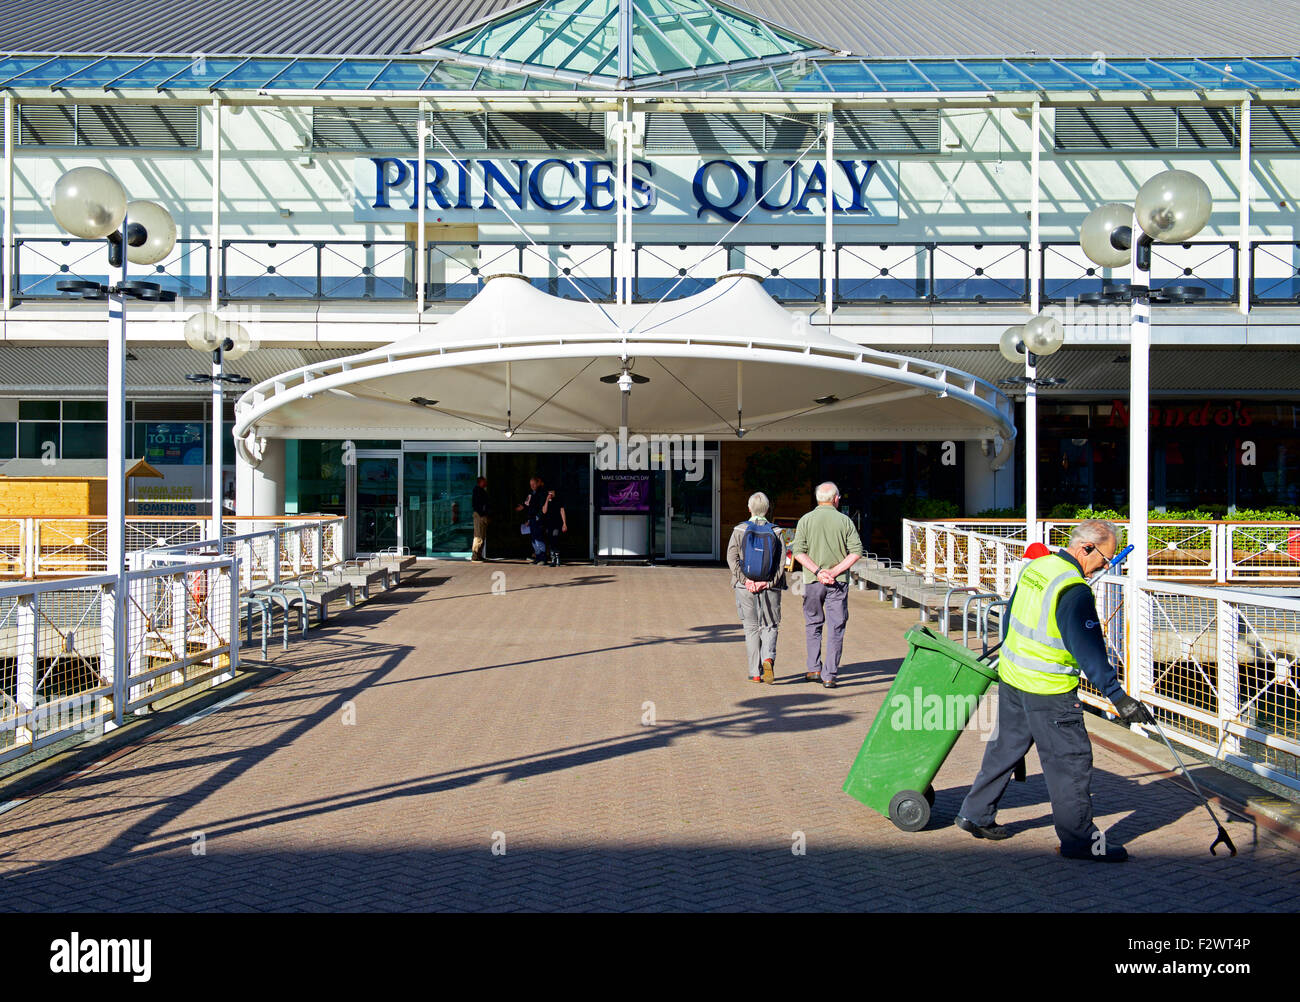 Princes Quay shopping centre, Kingston upon Hull, East Riding of Yorkshire, England UK - Stock Image